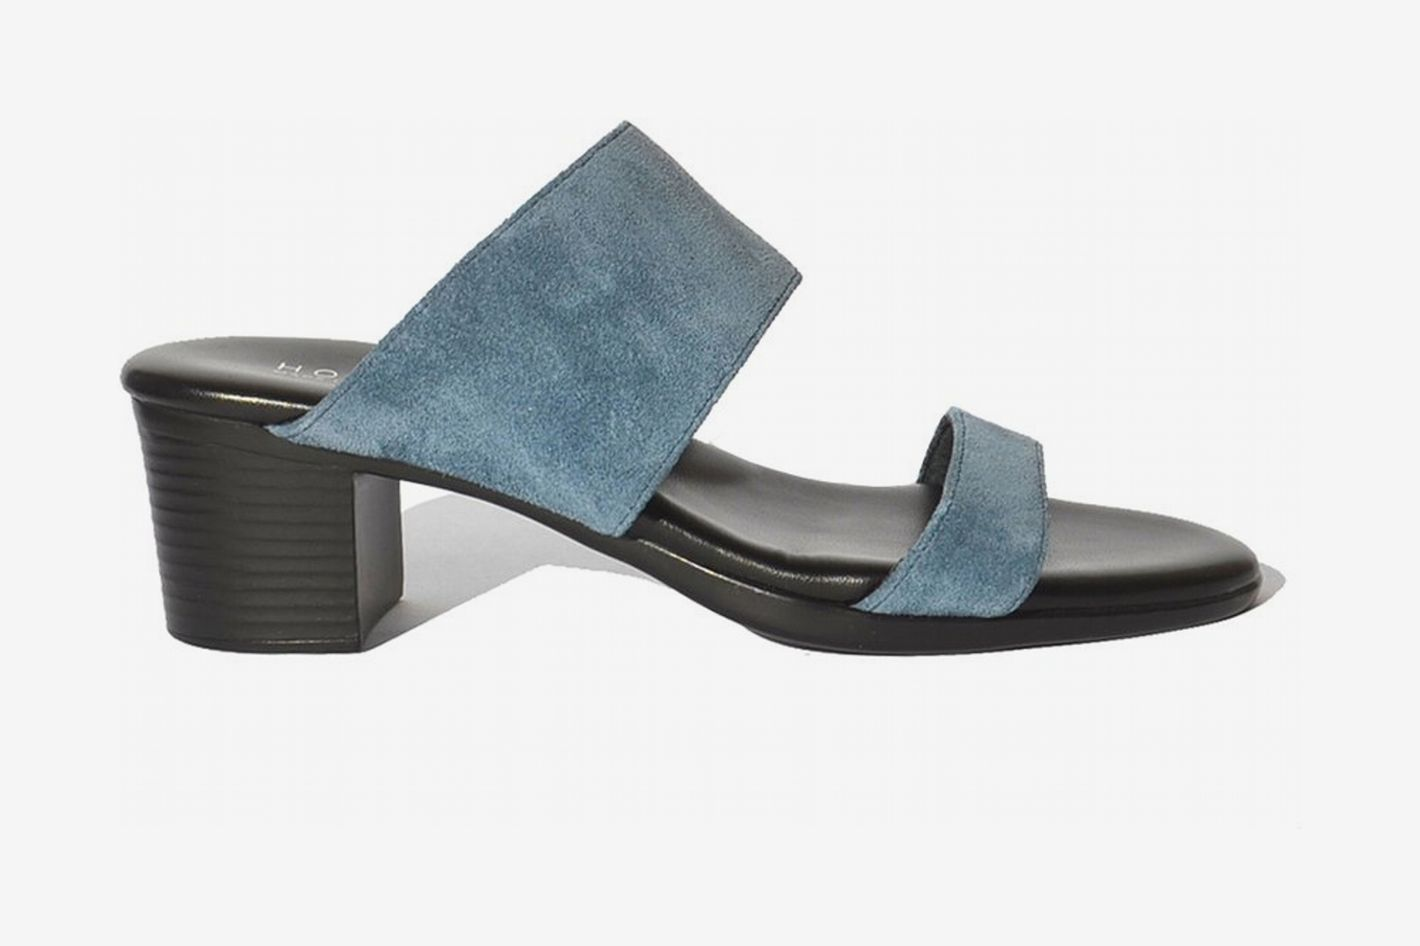 HOPP Two Strap Sandal - Denim Suede